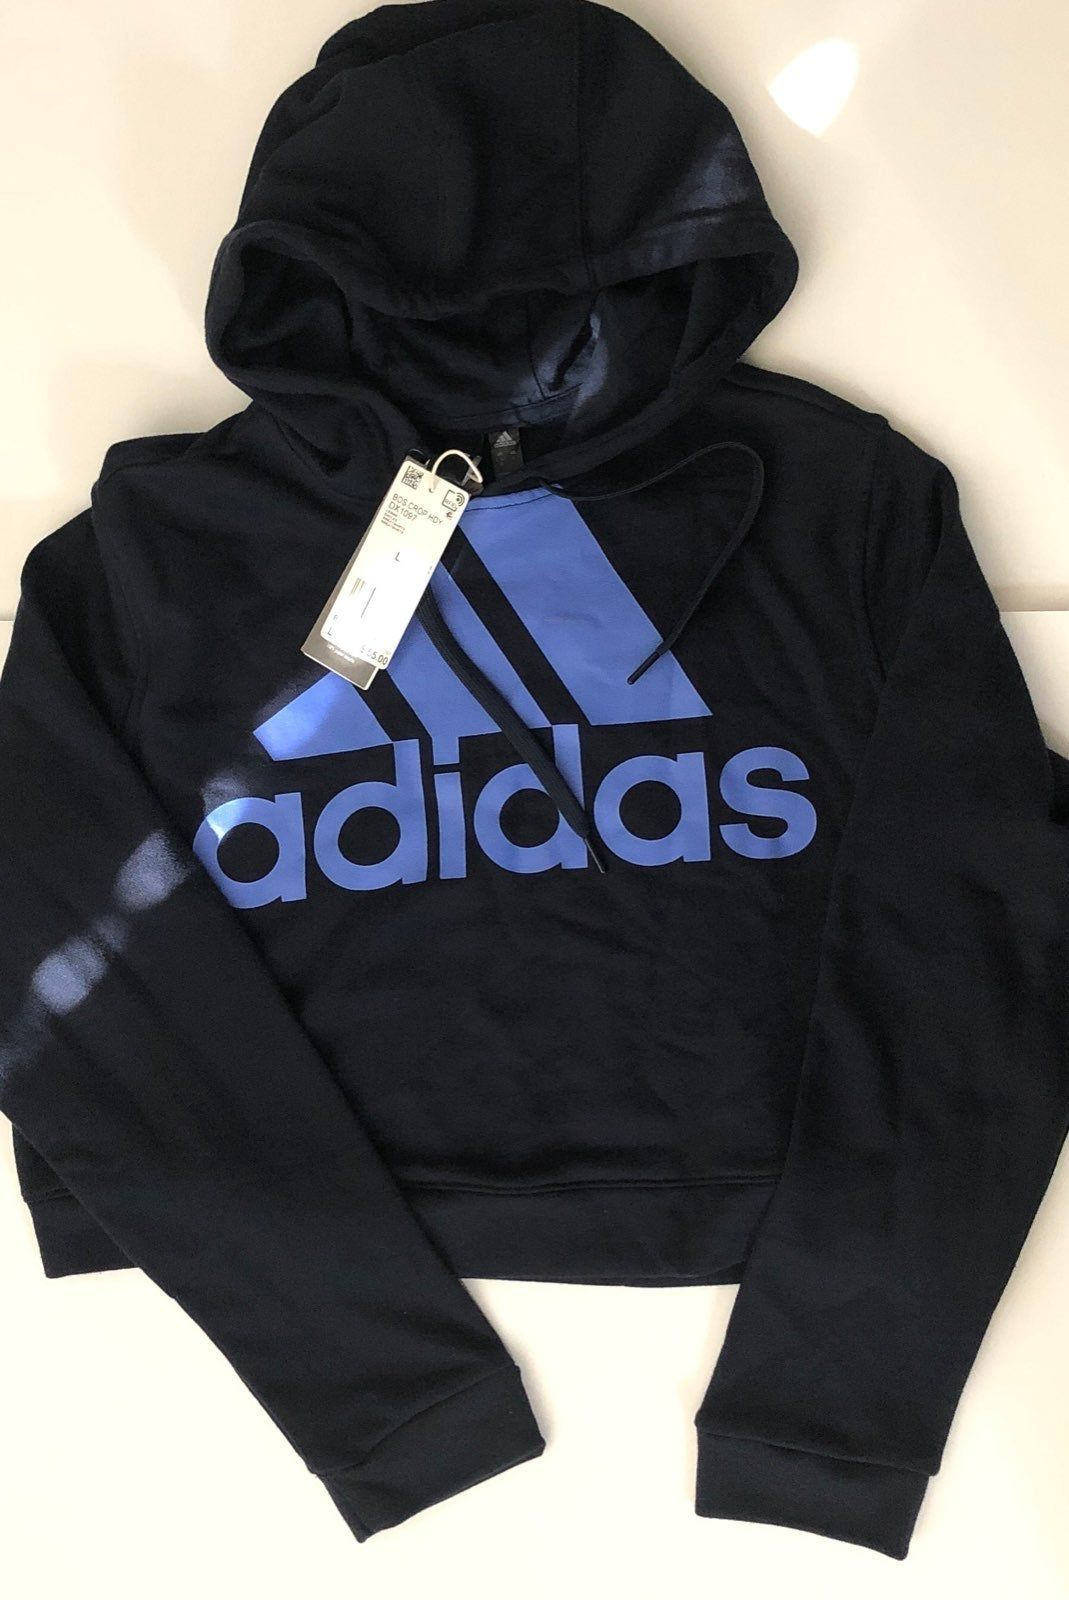 Nwt Adidas Cropped Hoodie Us Large Color Navy Blue Adidas Cropped Hoodie Adidas Crop Cropped Hoodie [ 1600 x 1069 Pixel ]